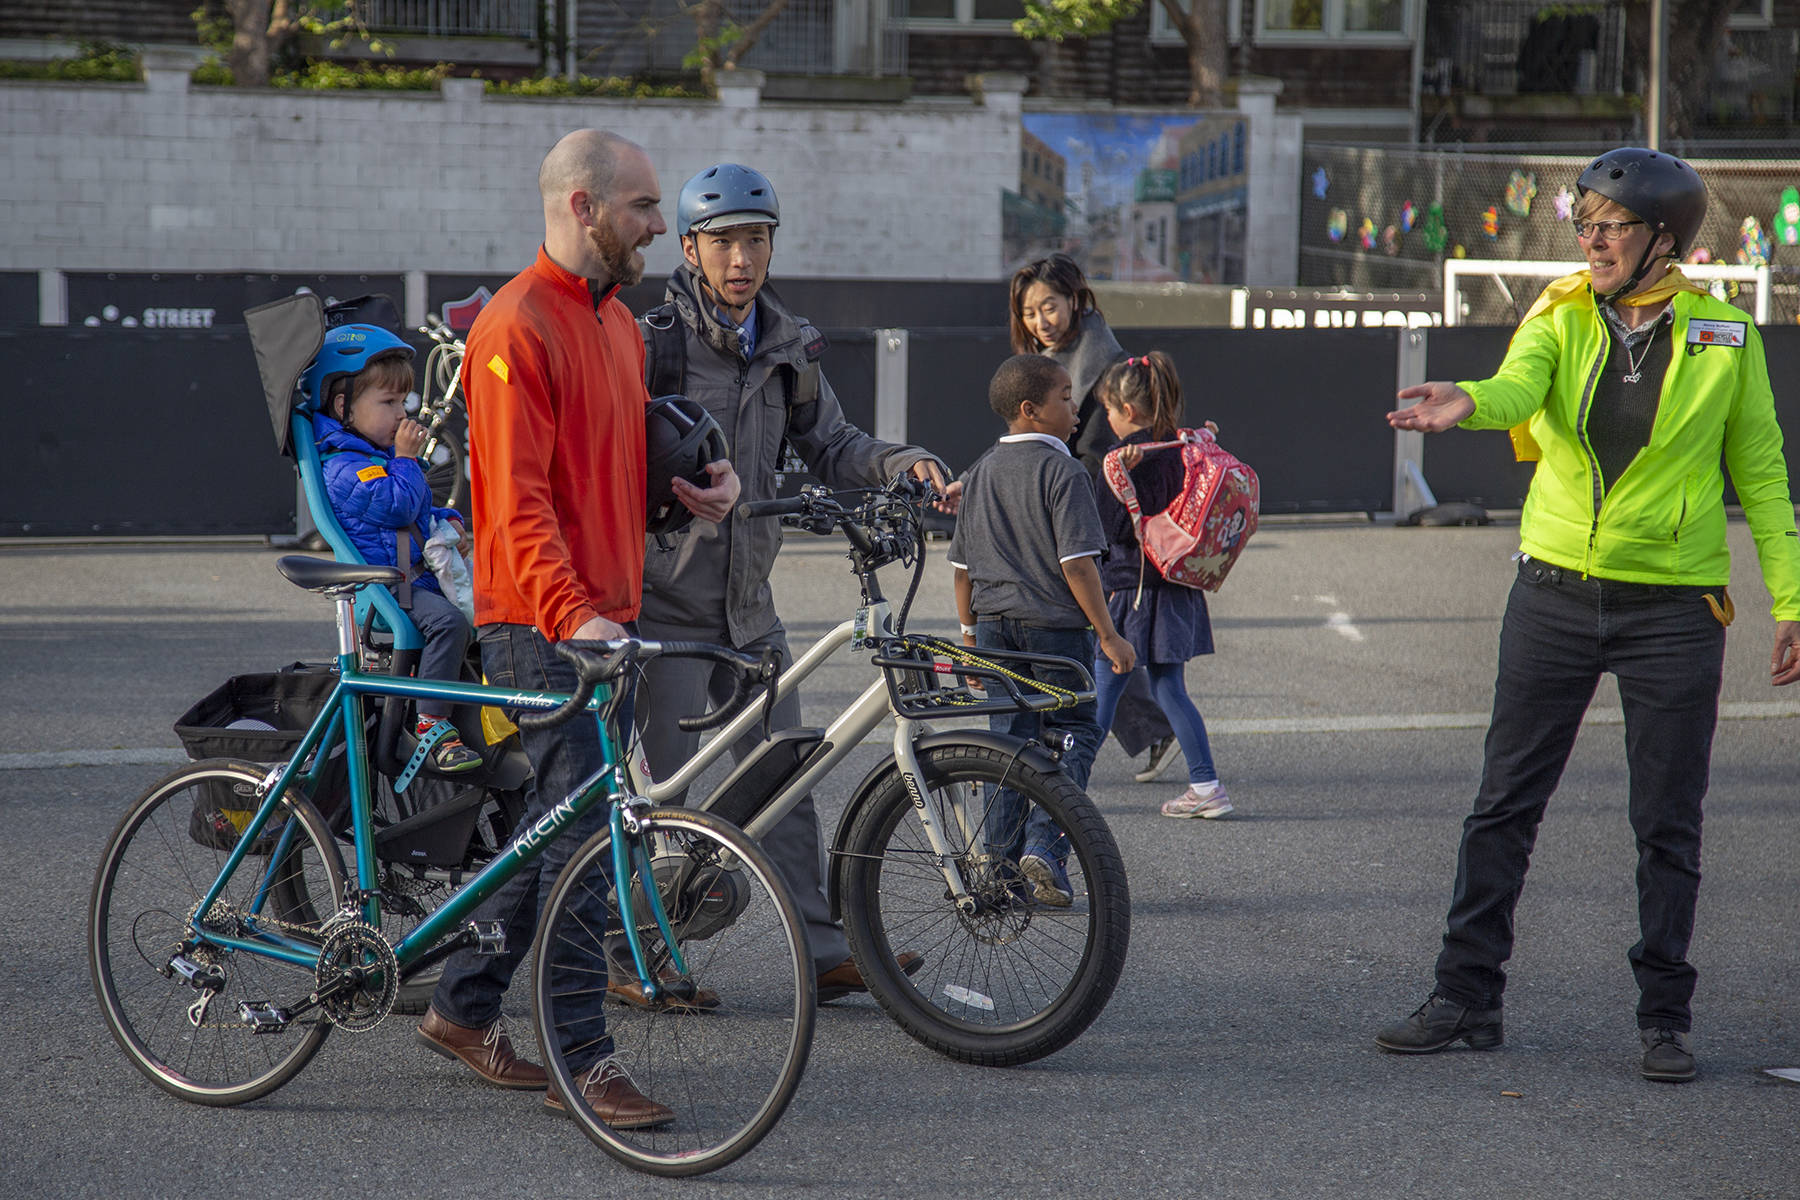 Families walk their bikes during an assembly for the Bike and Roll to School event at Rosa Parks Elementary School on Wednesday, April 17, 2019. (Ellie Doyen/Special to S.F. Examiner)